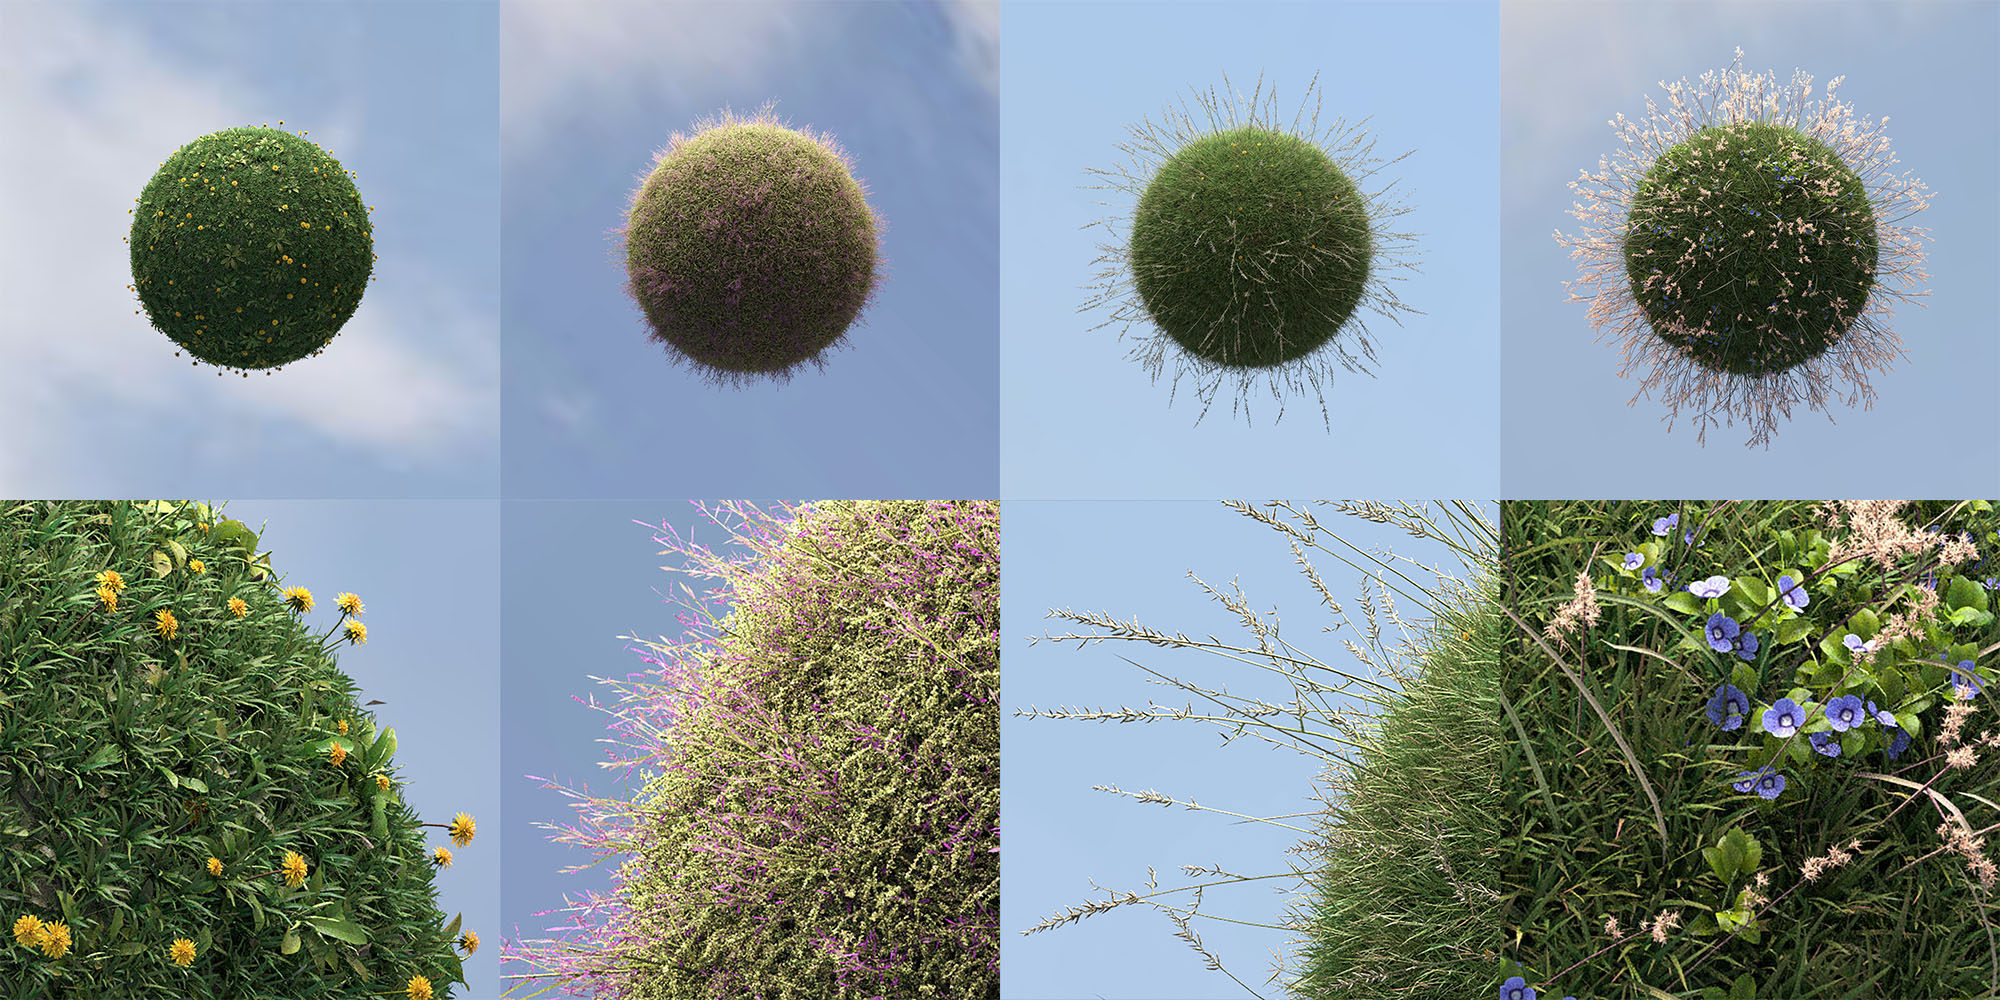 Grass Planets